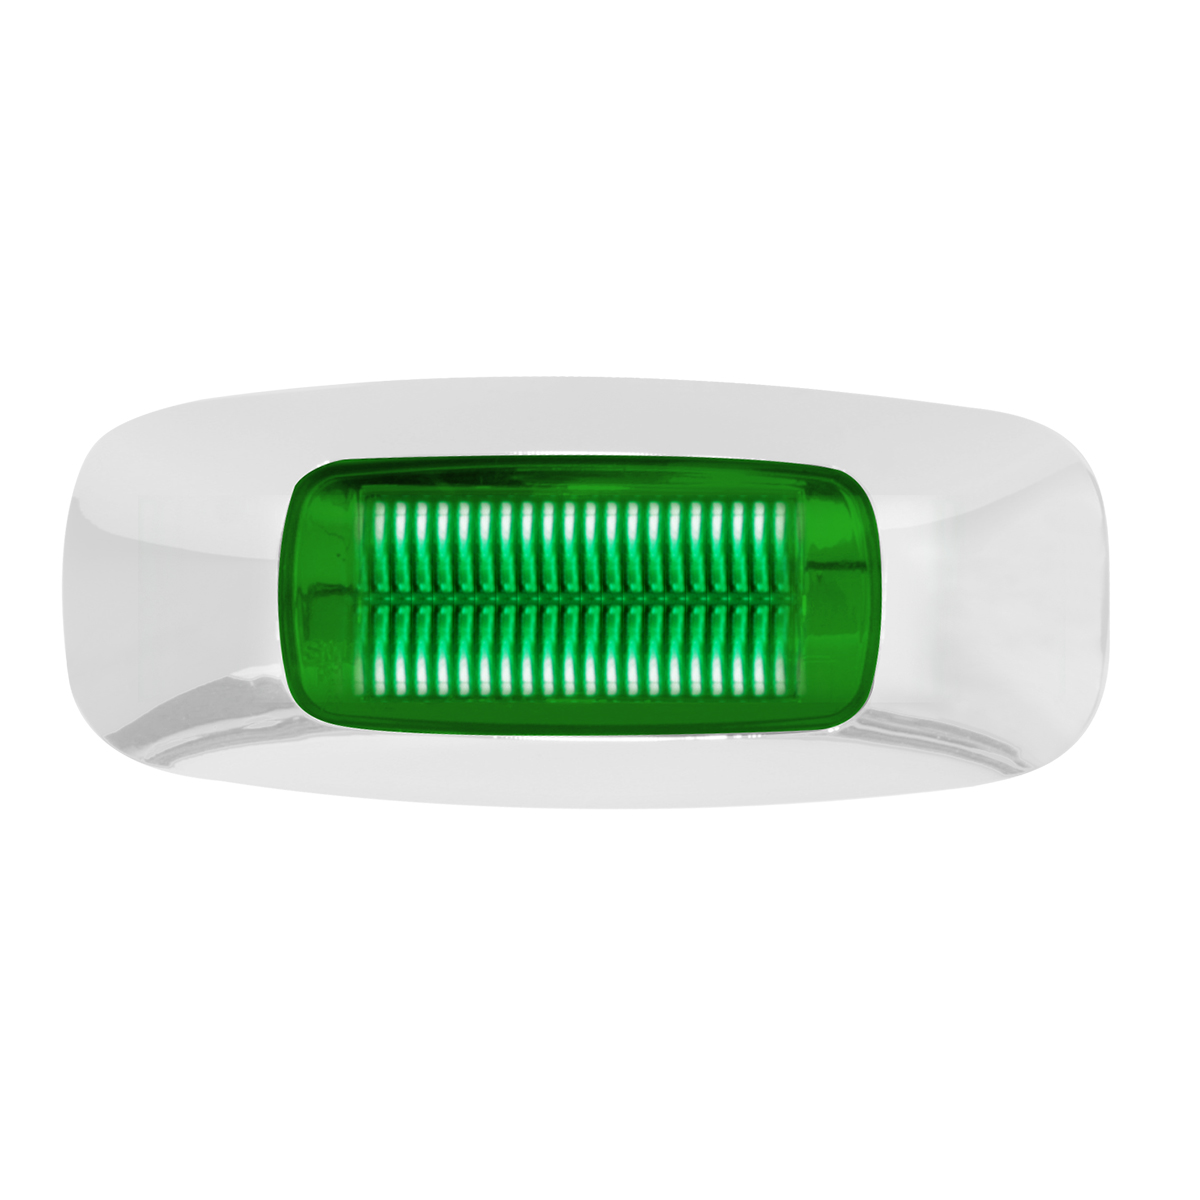 "74826 3.5"" Rectangular Prime LED Marker Light in Green/Green"